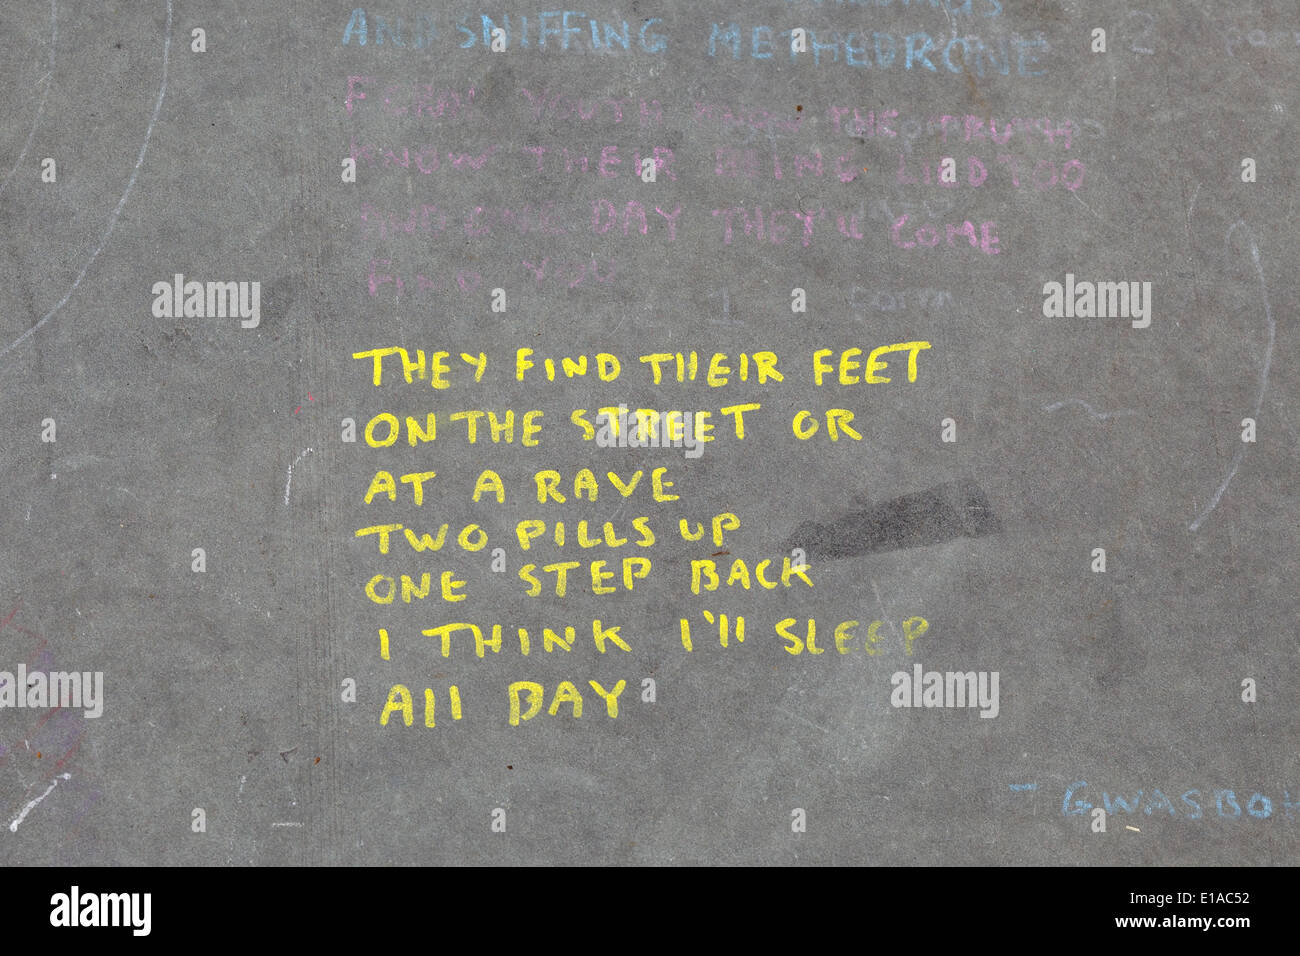 They find their feet on the street at a rave two pills up and one step back i think i'll sleep all day Message on Pavement - Stock Image